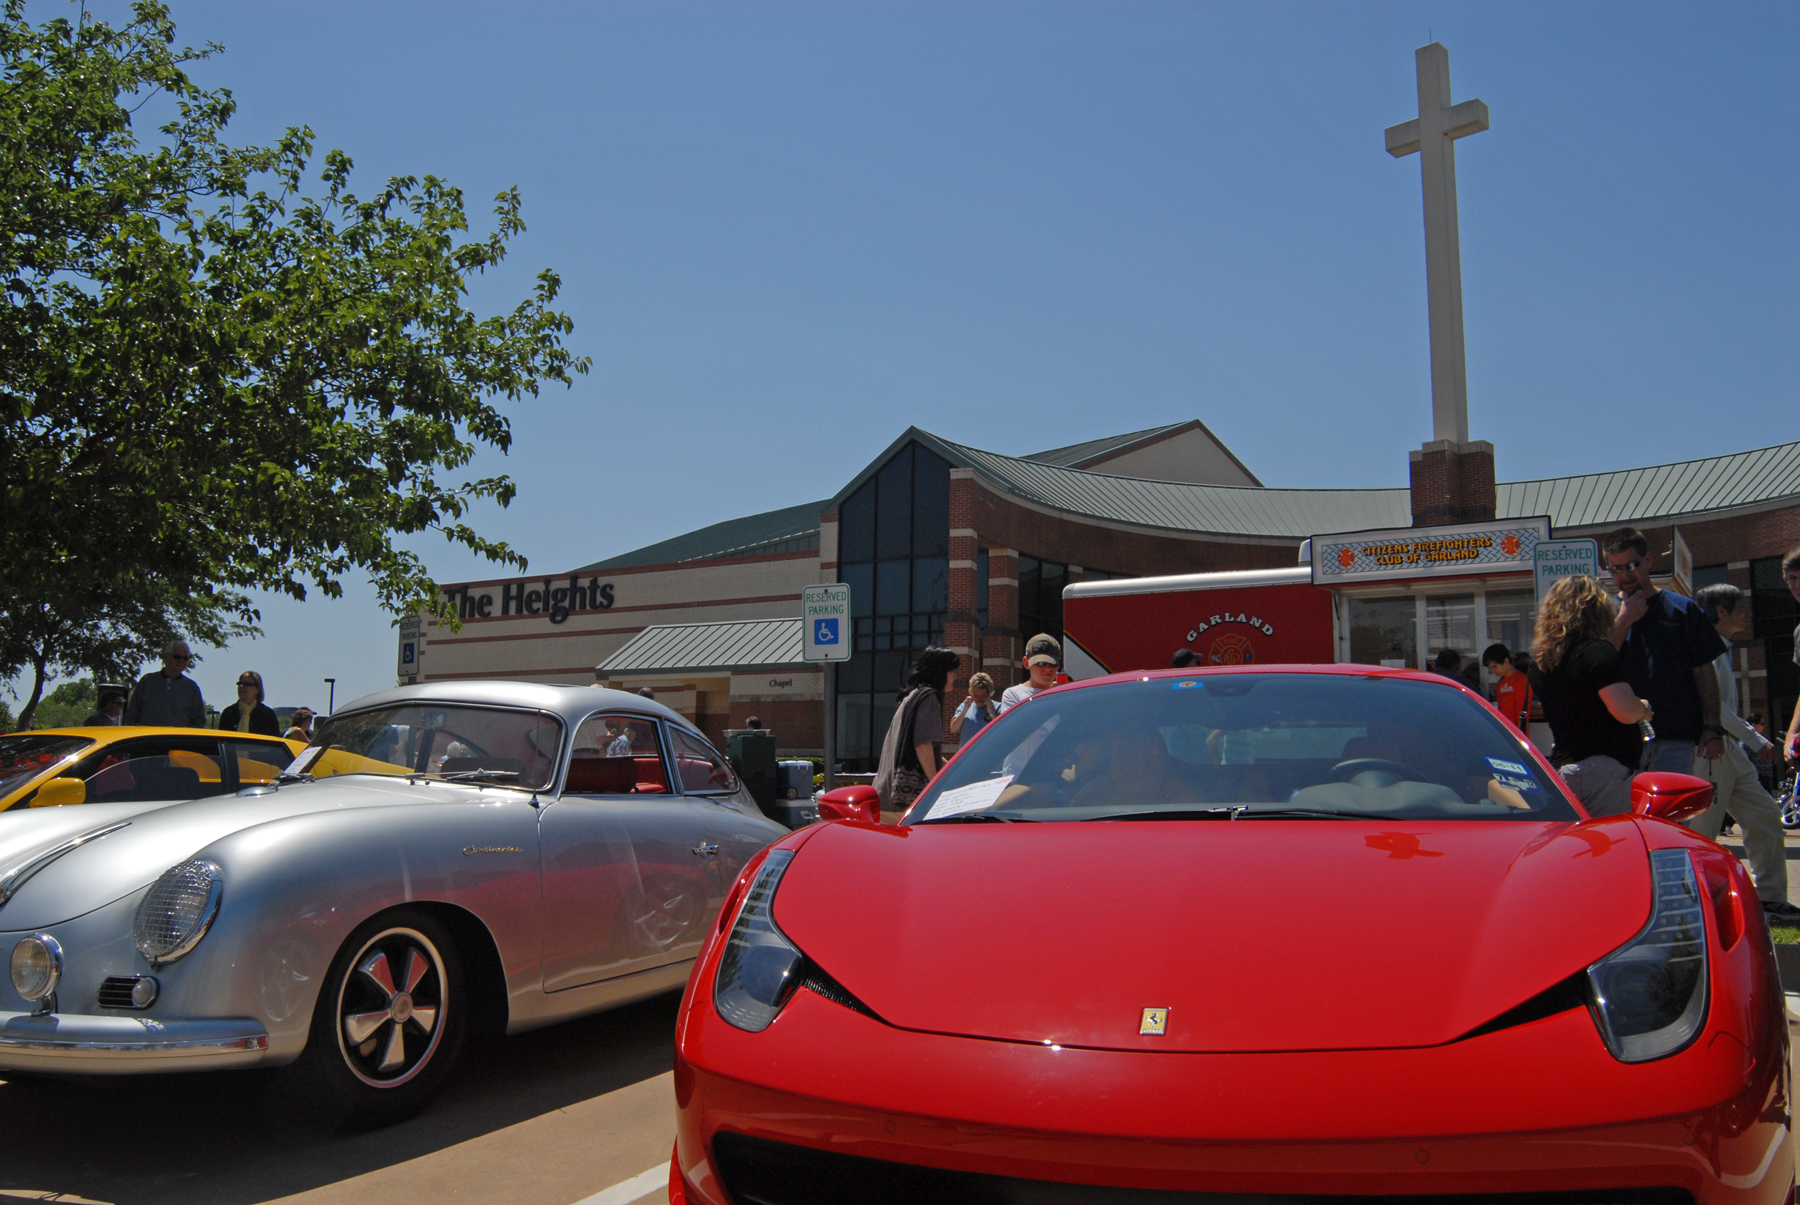 Heights Car Show to benefit Network Food Pantry